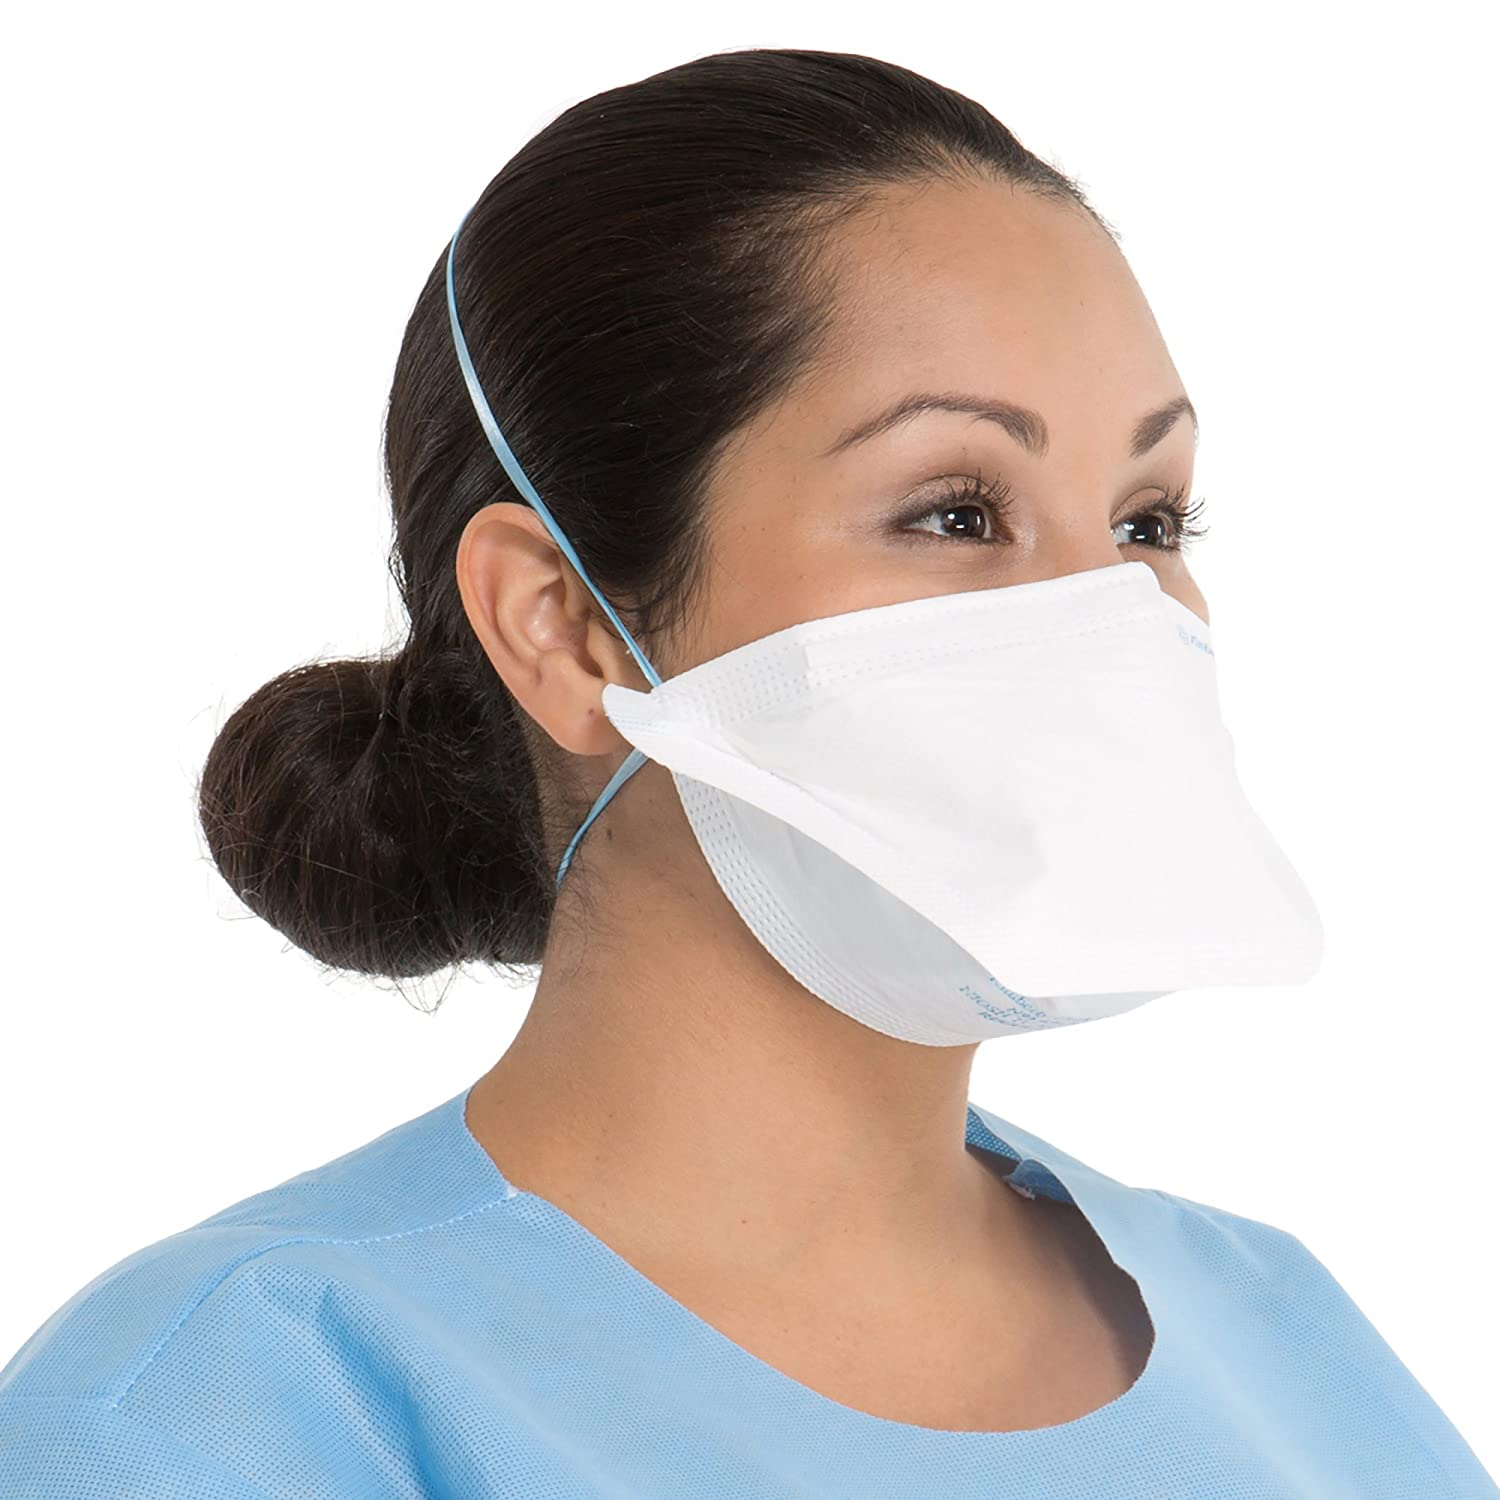 Respirator Kimberly-clark Particulate Fluidshield Filter N95 And